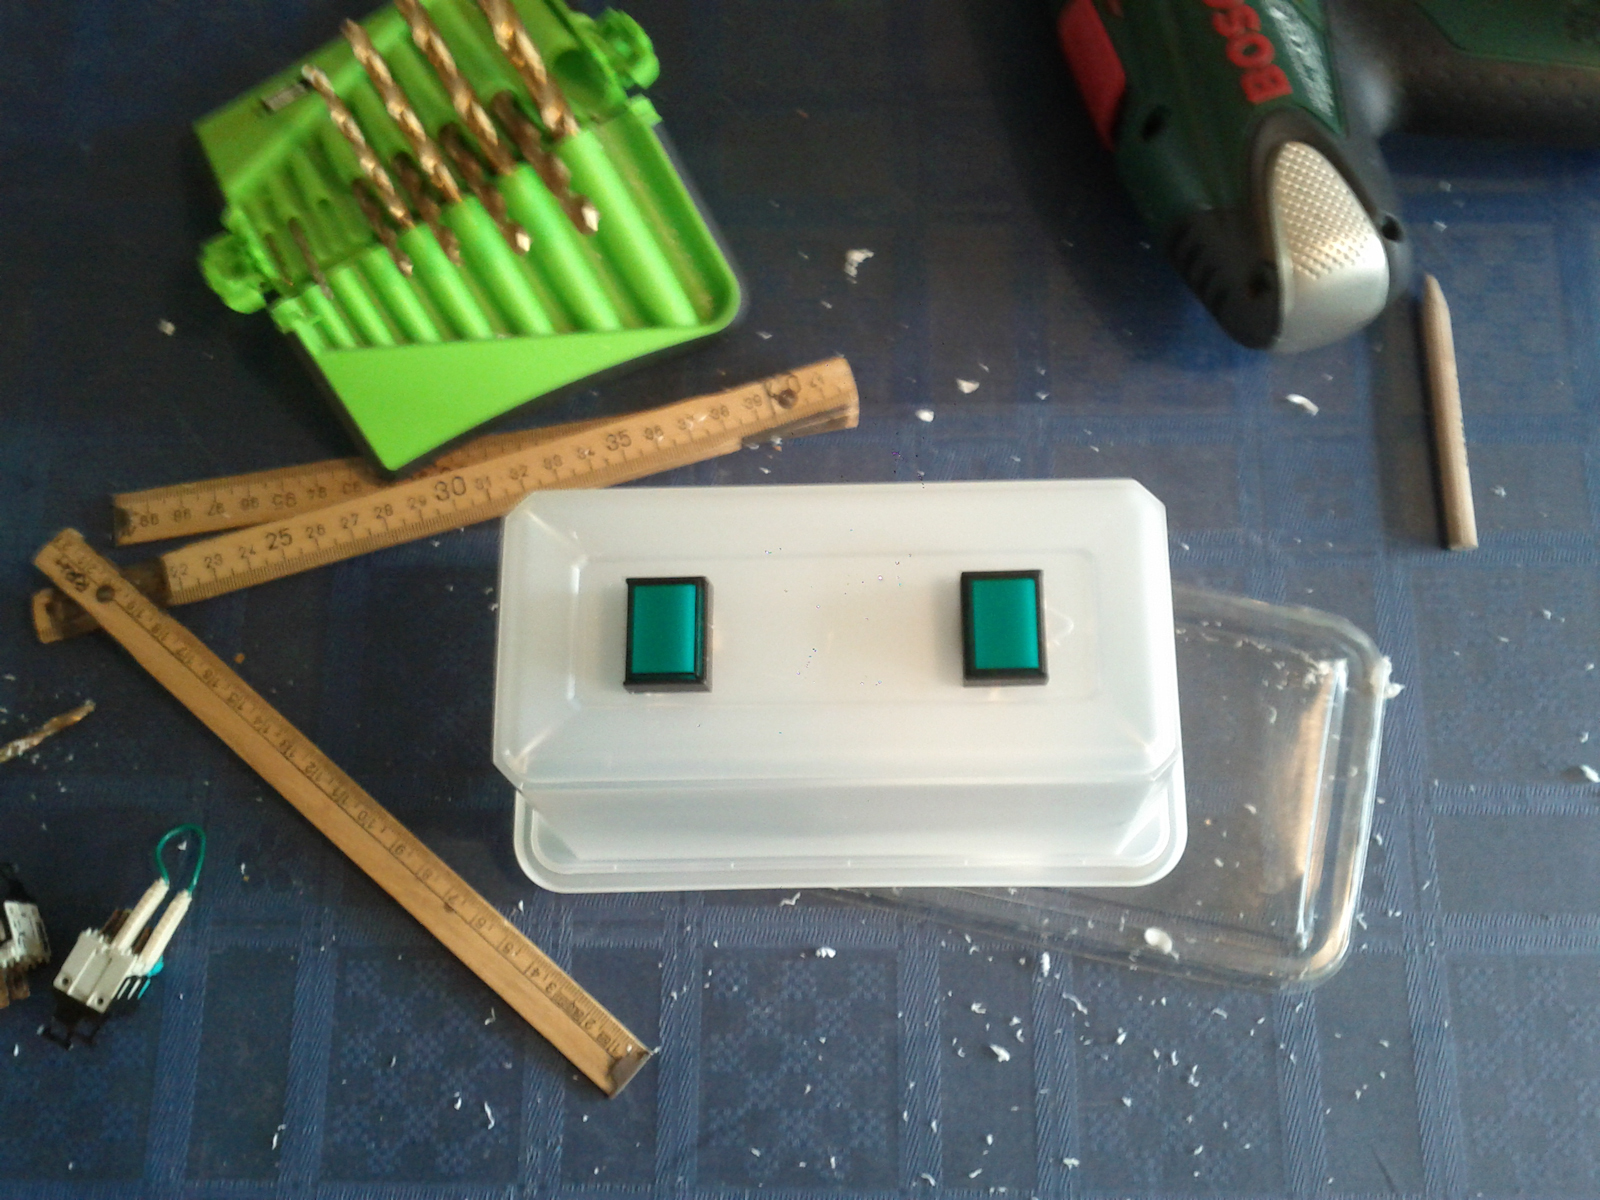 Holes to switches drilled out